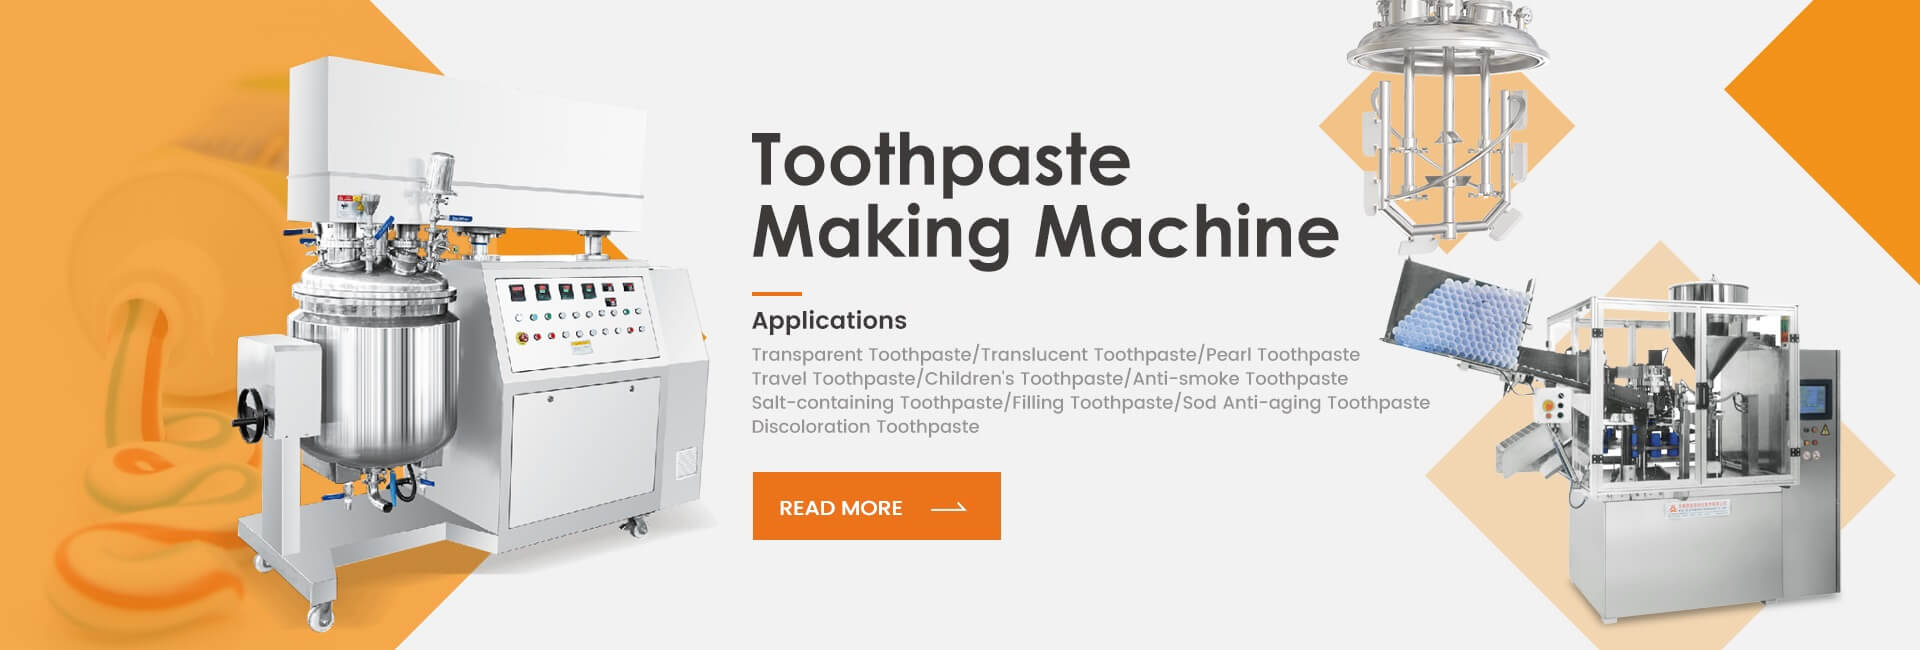 toothpaste making machine